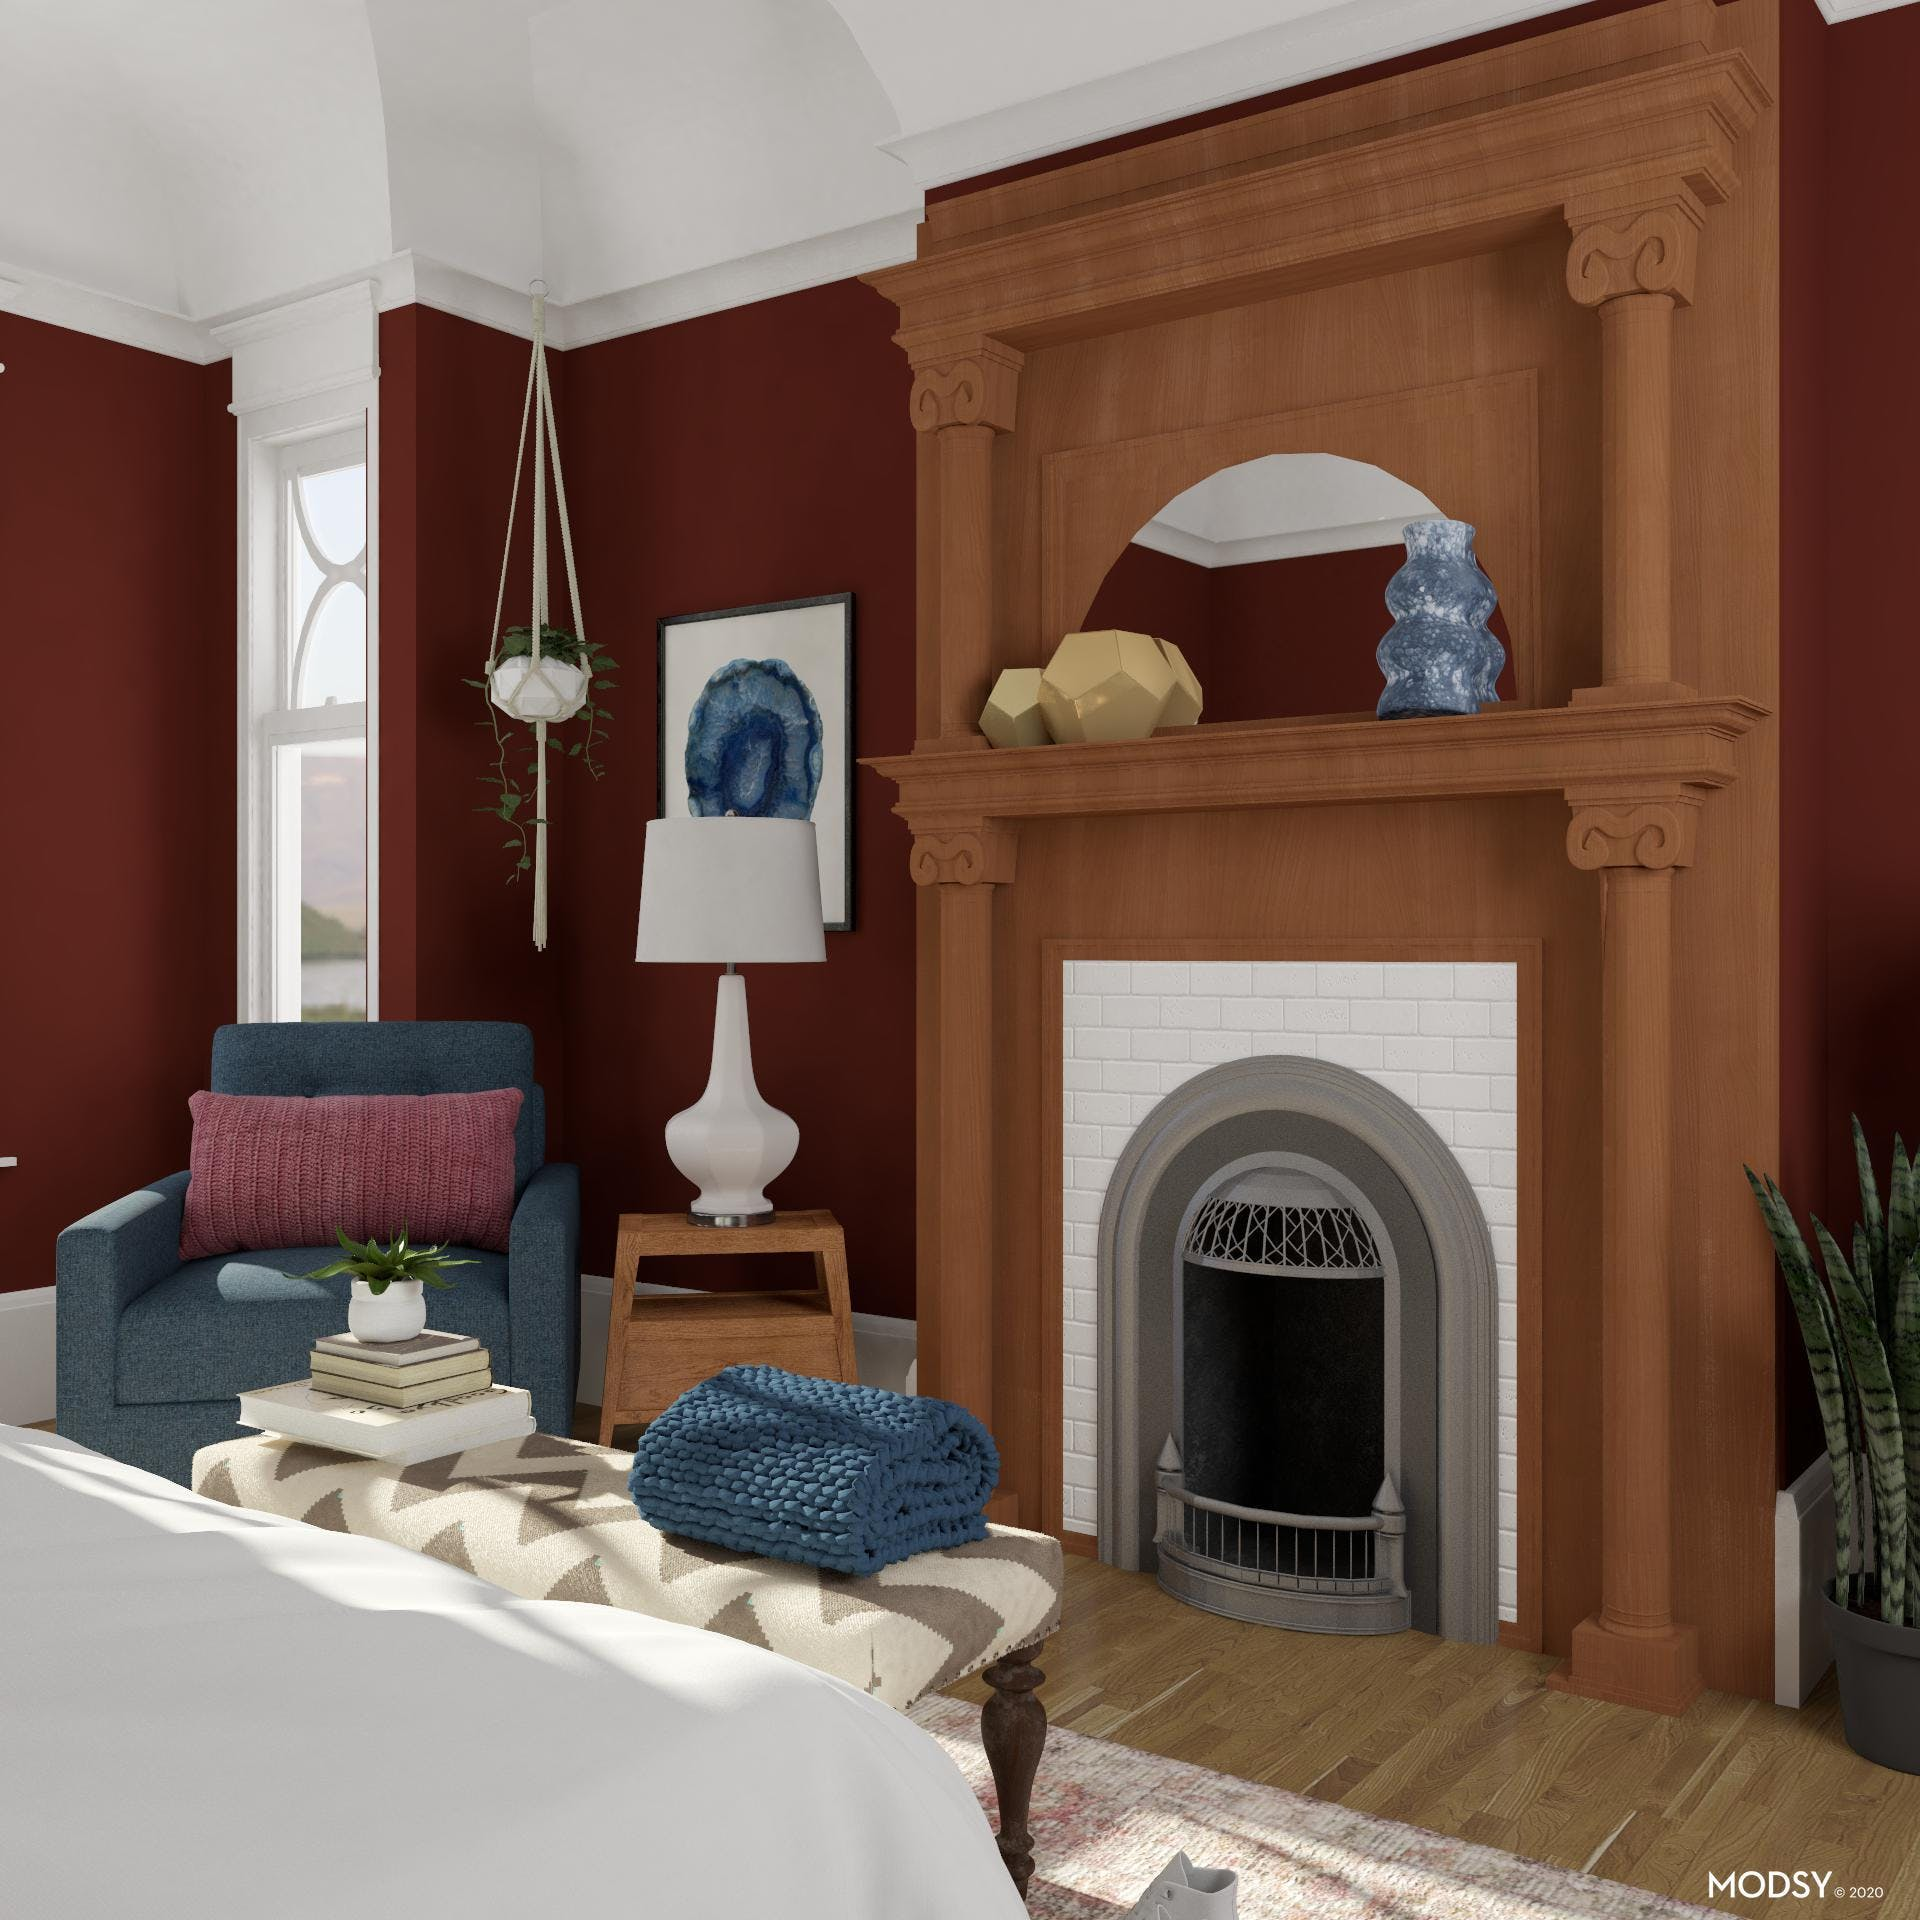 Transitional Bedroom with Fireplace